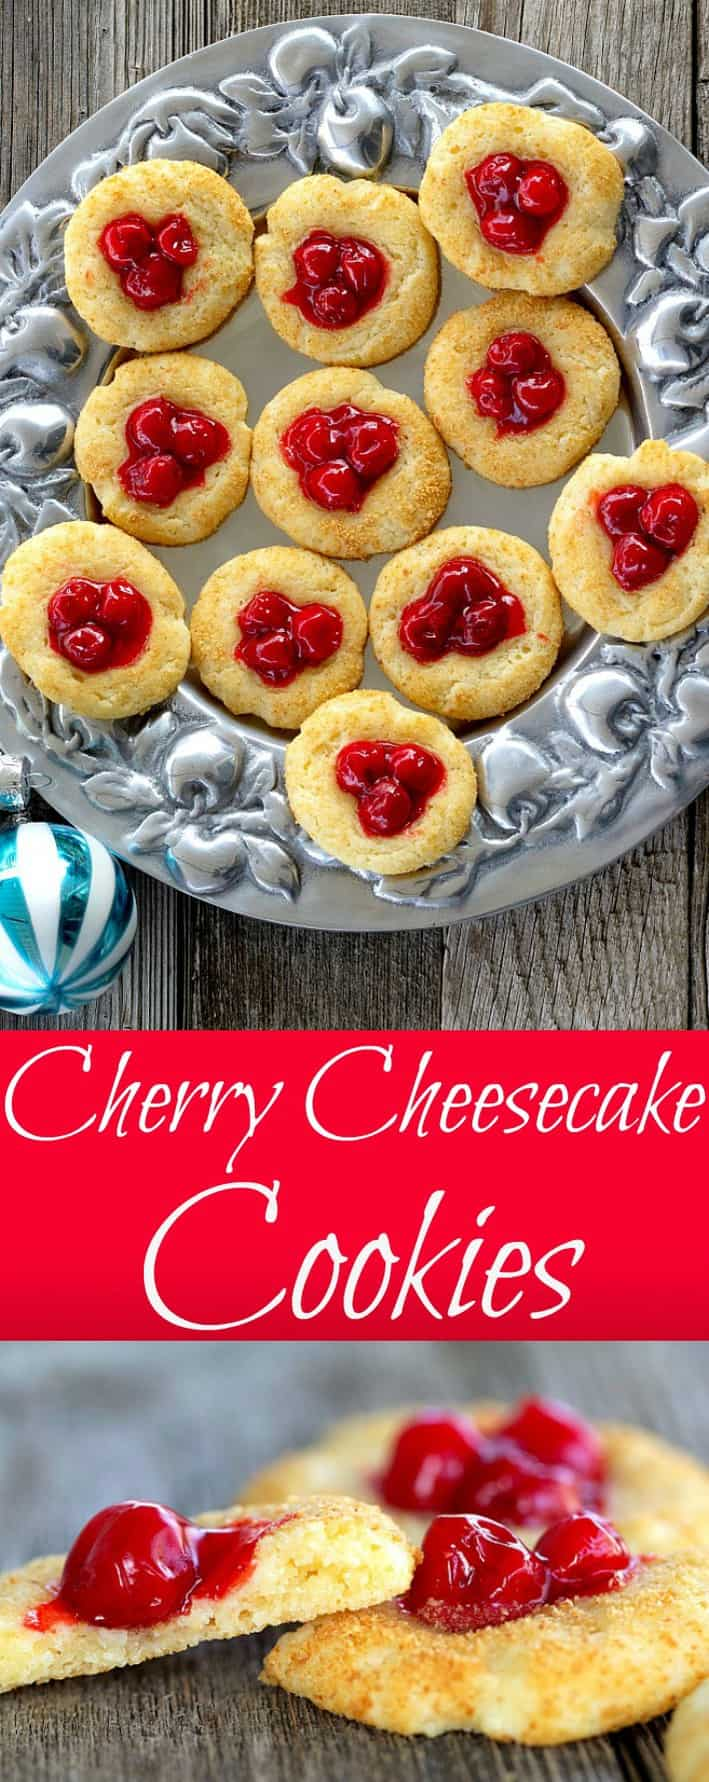 Cherry Cheesecake Cookies have the flavor of your favorite cheesecake recipe in a bite-sized, easy to achieve cookie. The dough contains cream cheese which is then rolled in graham cracker crumbs, topped with cherry pie filling before baking. #cookies #cheesecake